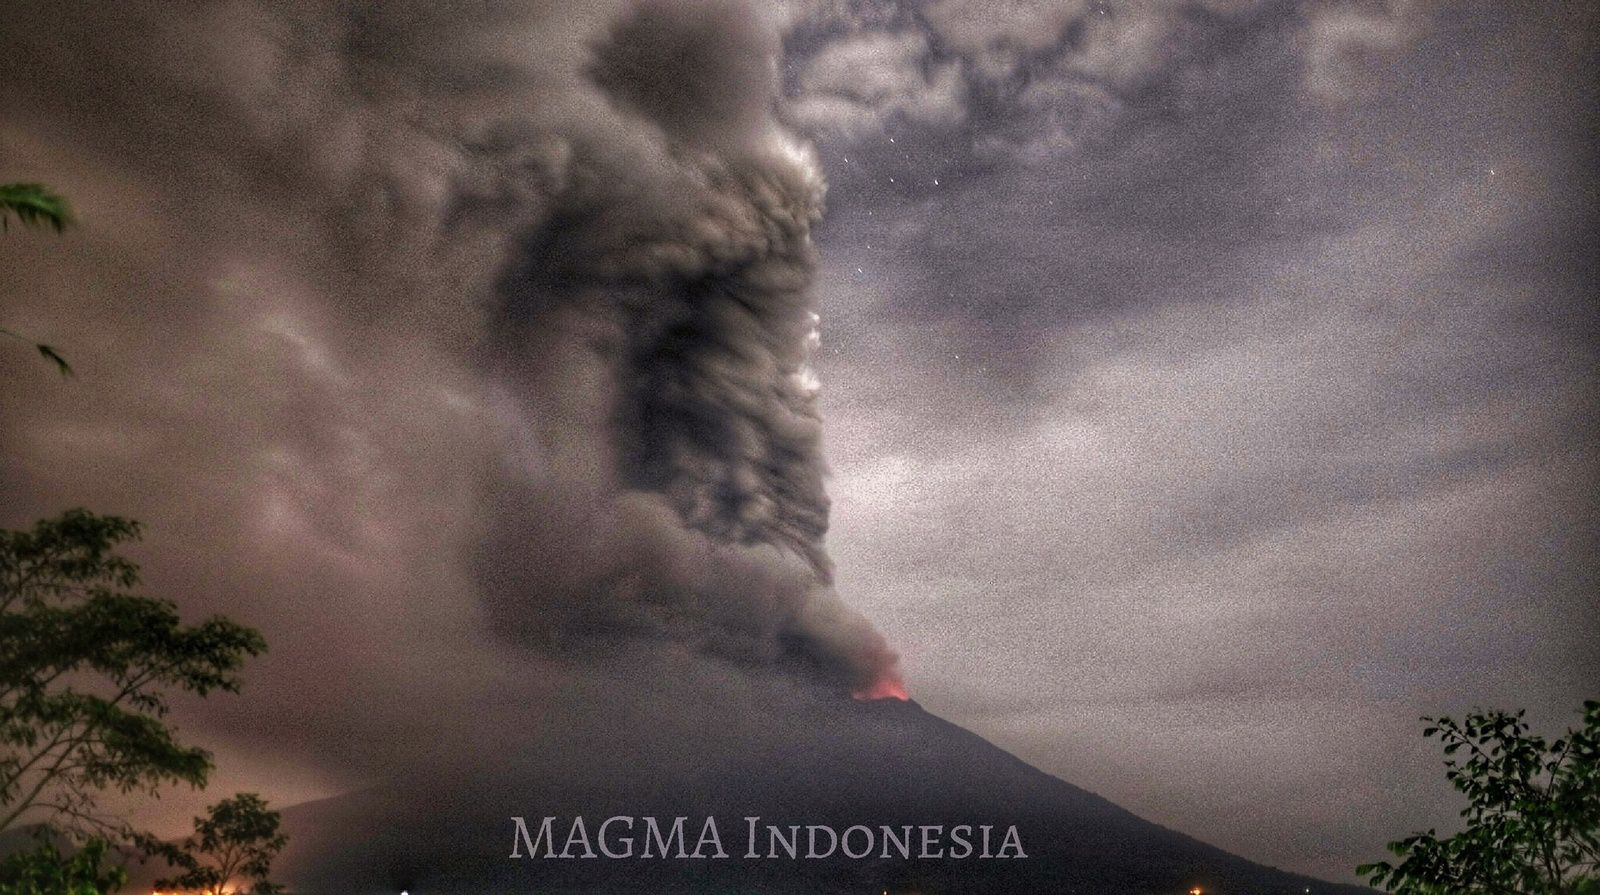 Agung - 27.11.2017 / 20:35 WITA - photo Magma Indonesia